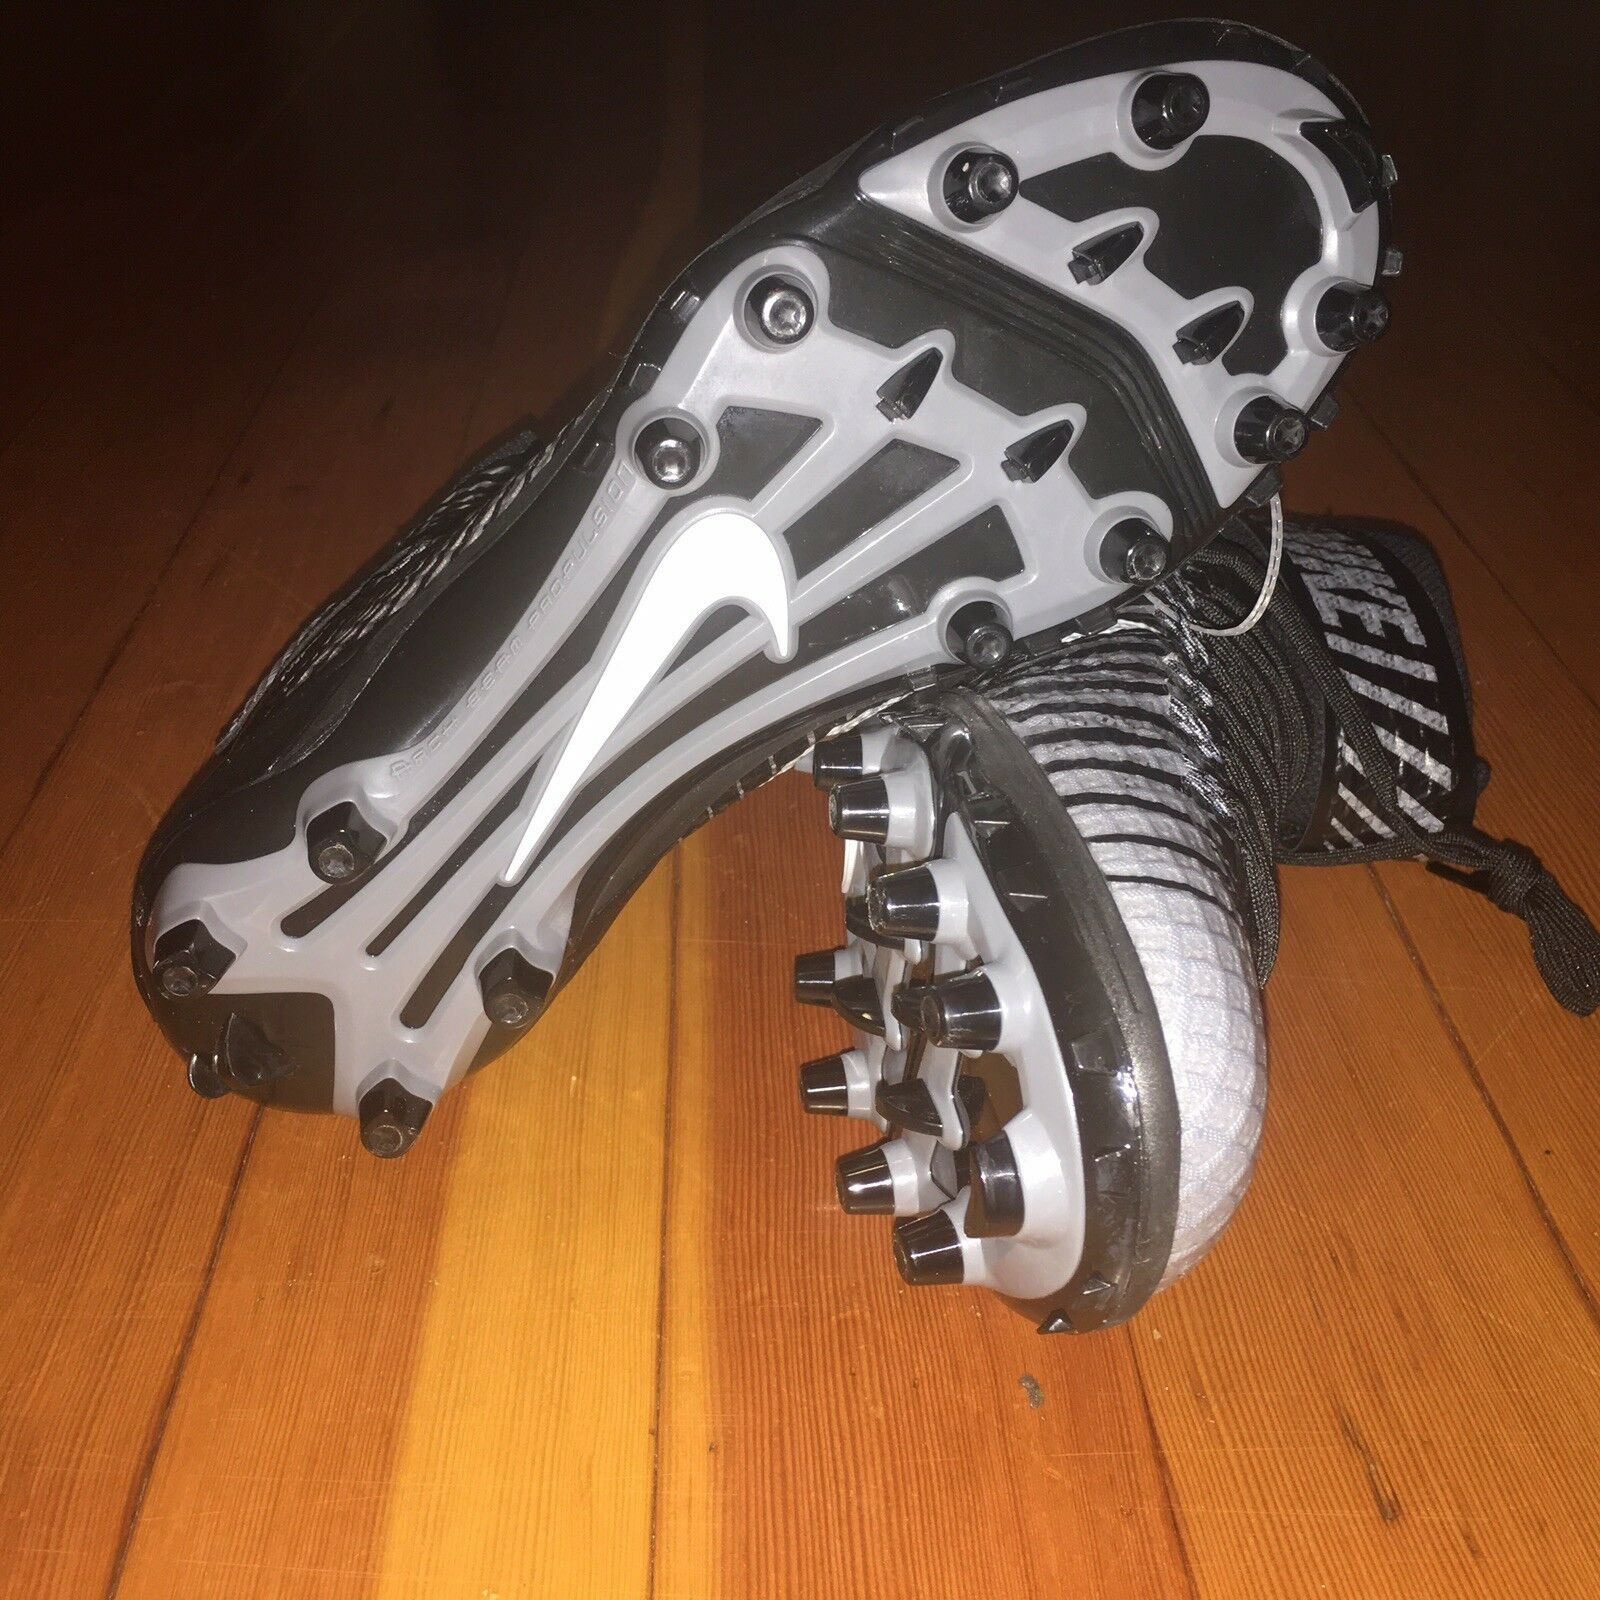 nike noirs lunarbeast noirs nike / gris élite td crampons 779422-010 nouvelle taille 10 57cf22